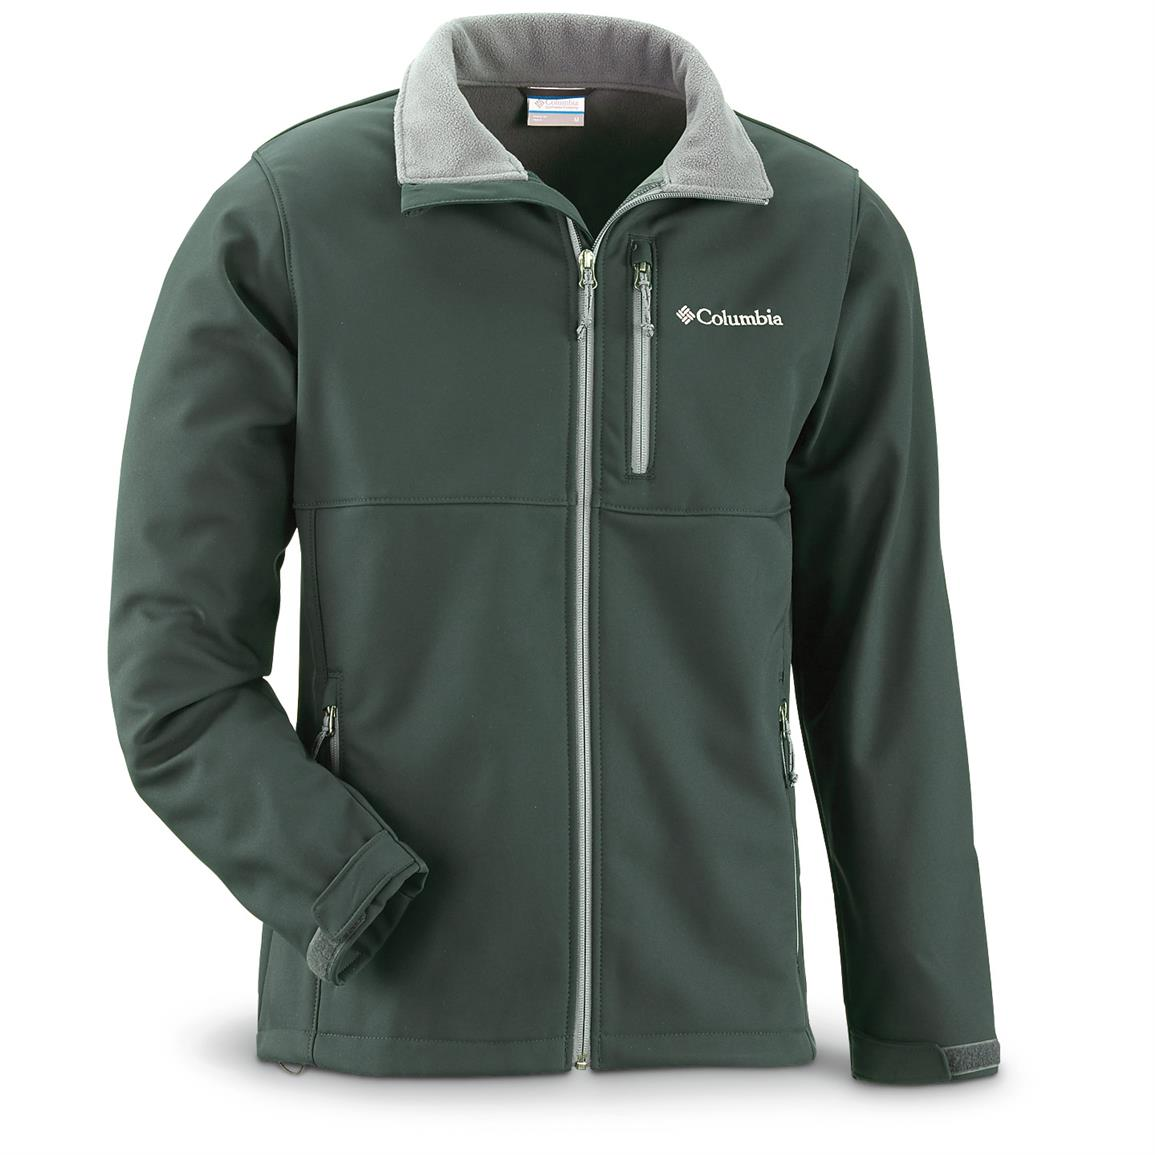 Columbia Men's Ascender Softshell Jacket, Wildwood Green